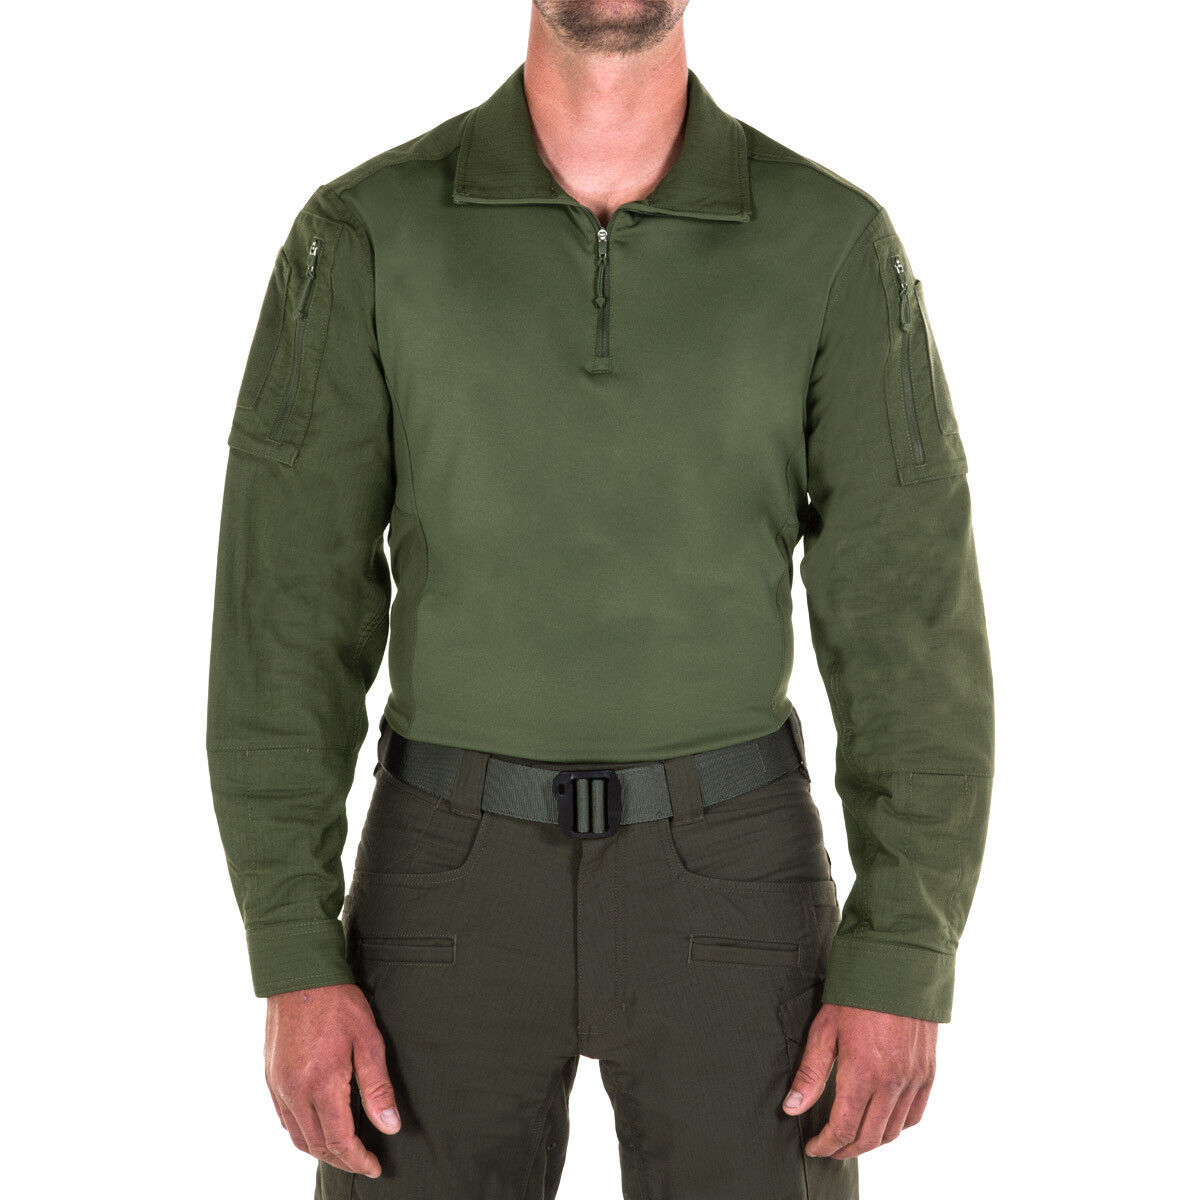 First Tactical Mens Defender Military Combat Shirt Patrol Security Top OD Green